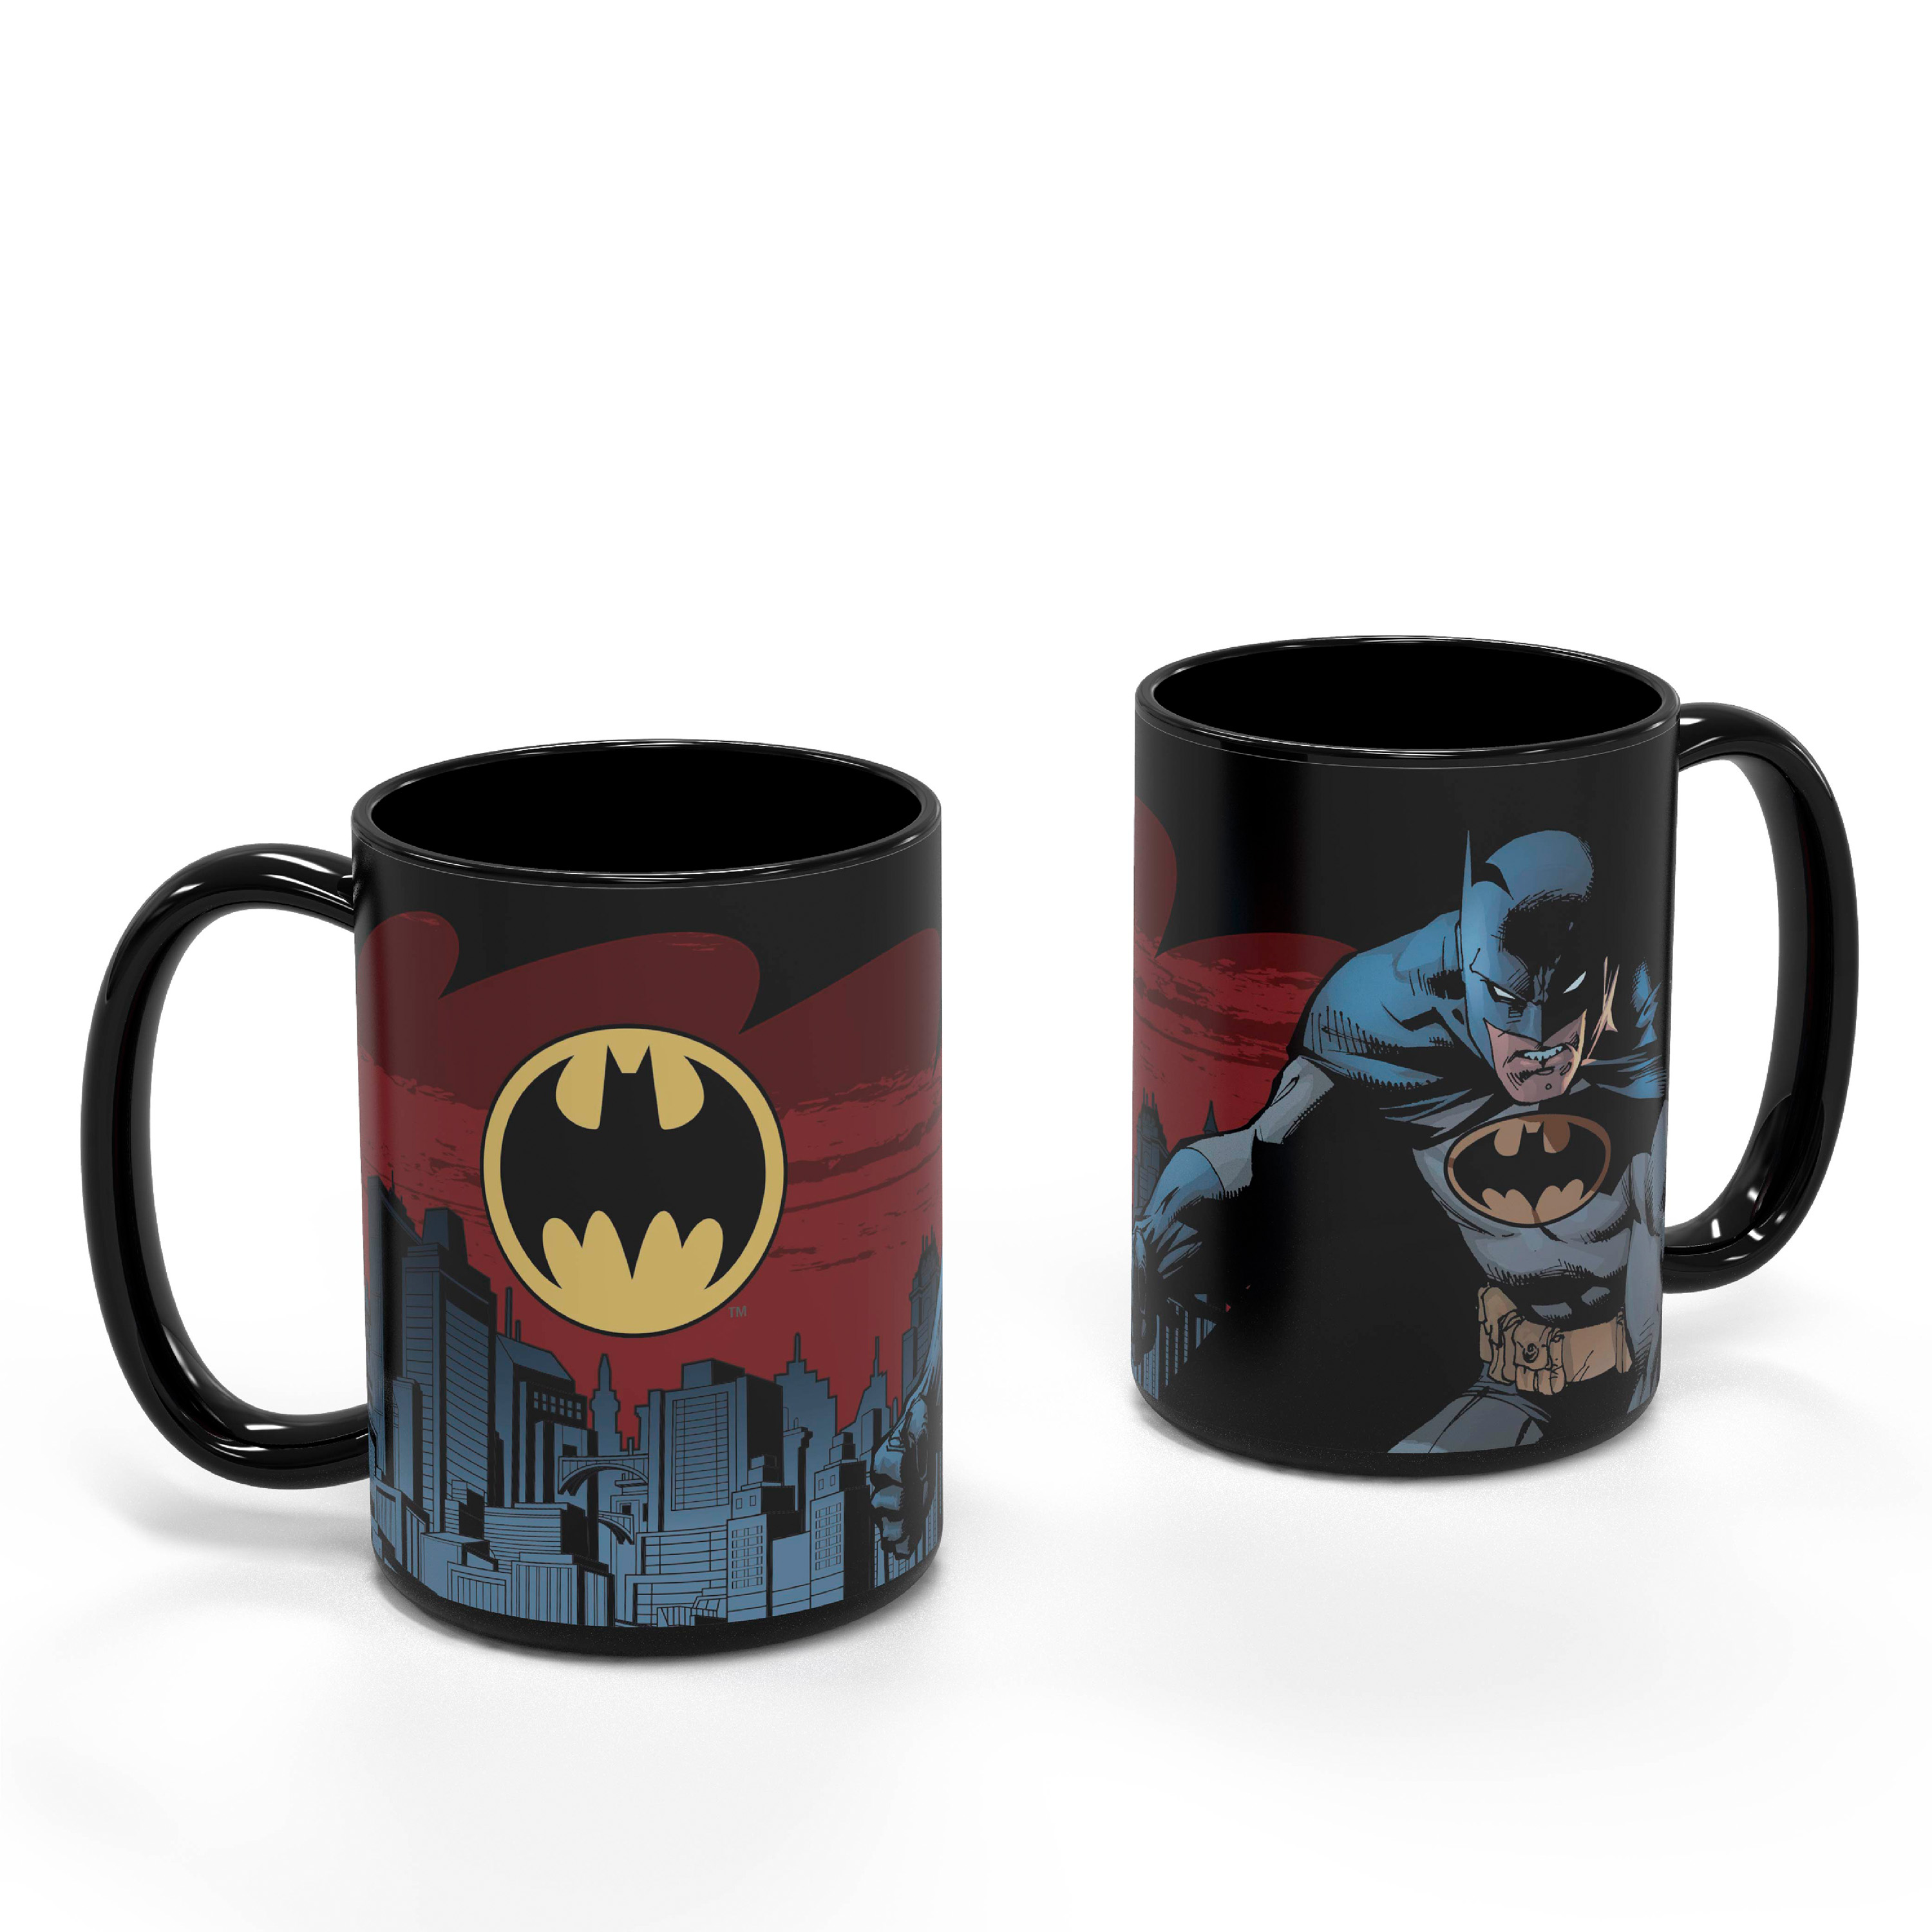 DC Comics 15 oz. Coffee Mug, Batman slideshow image 11